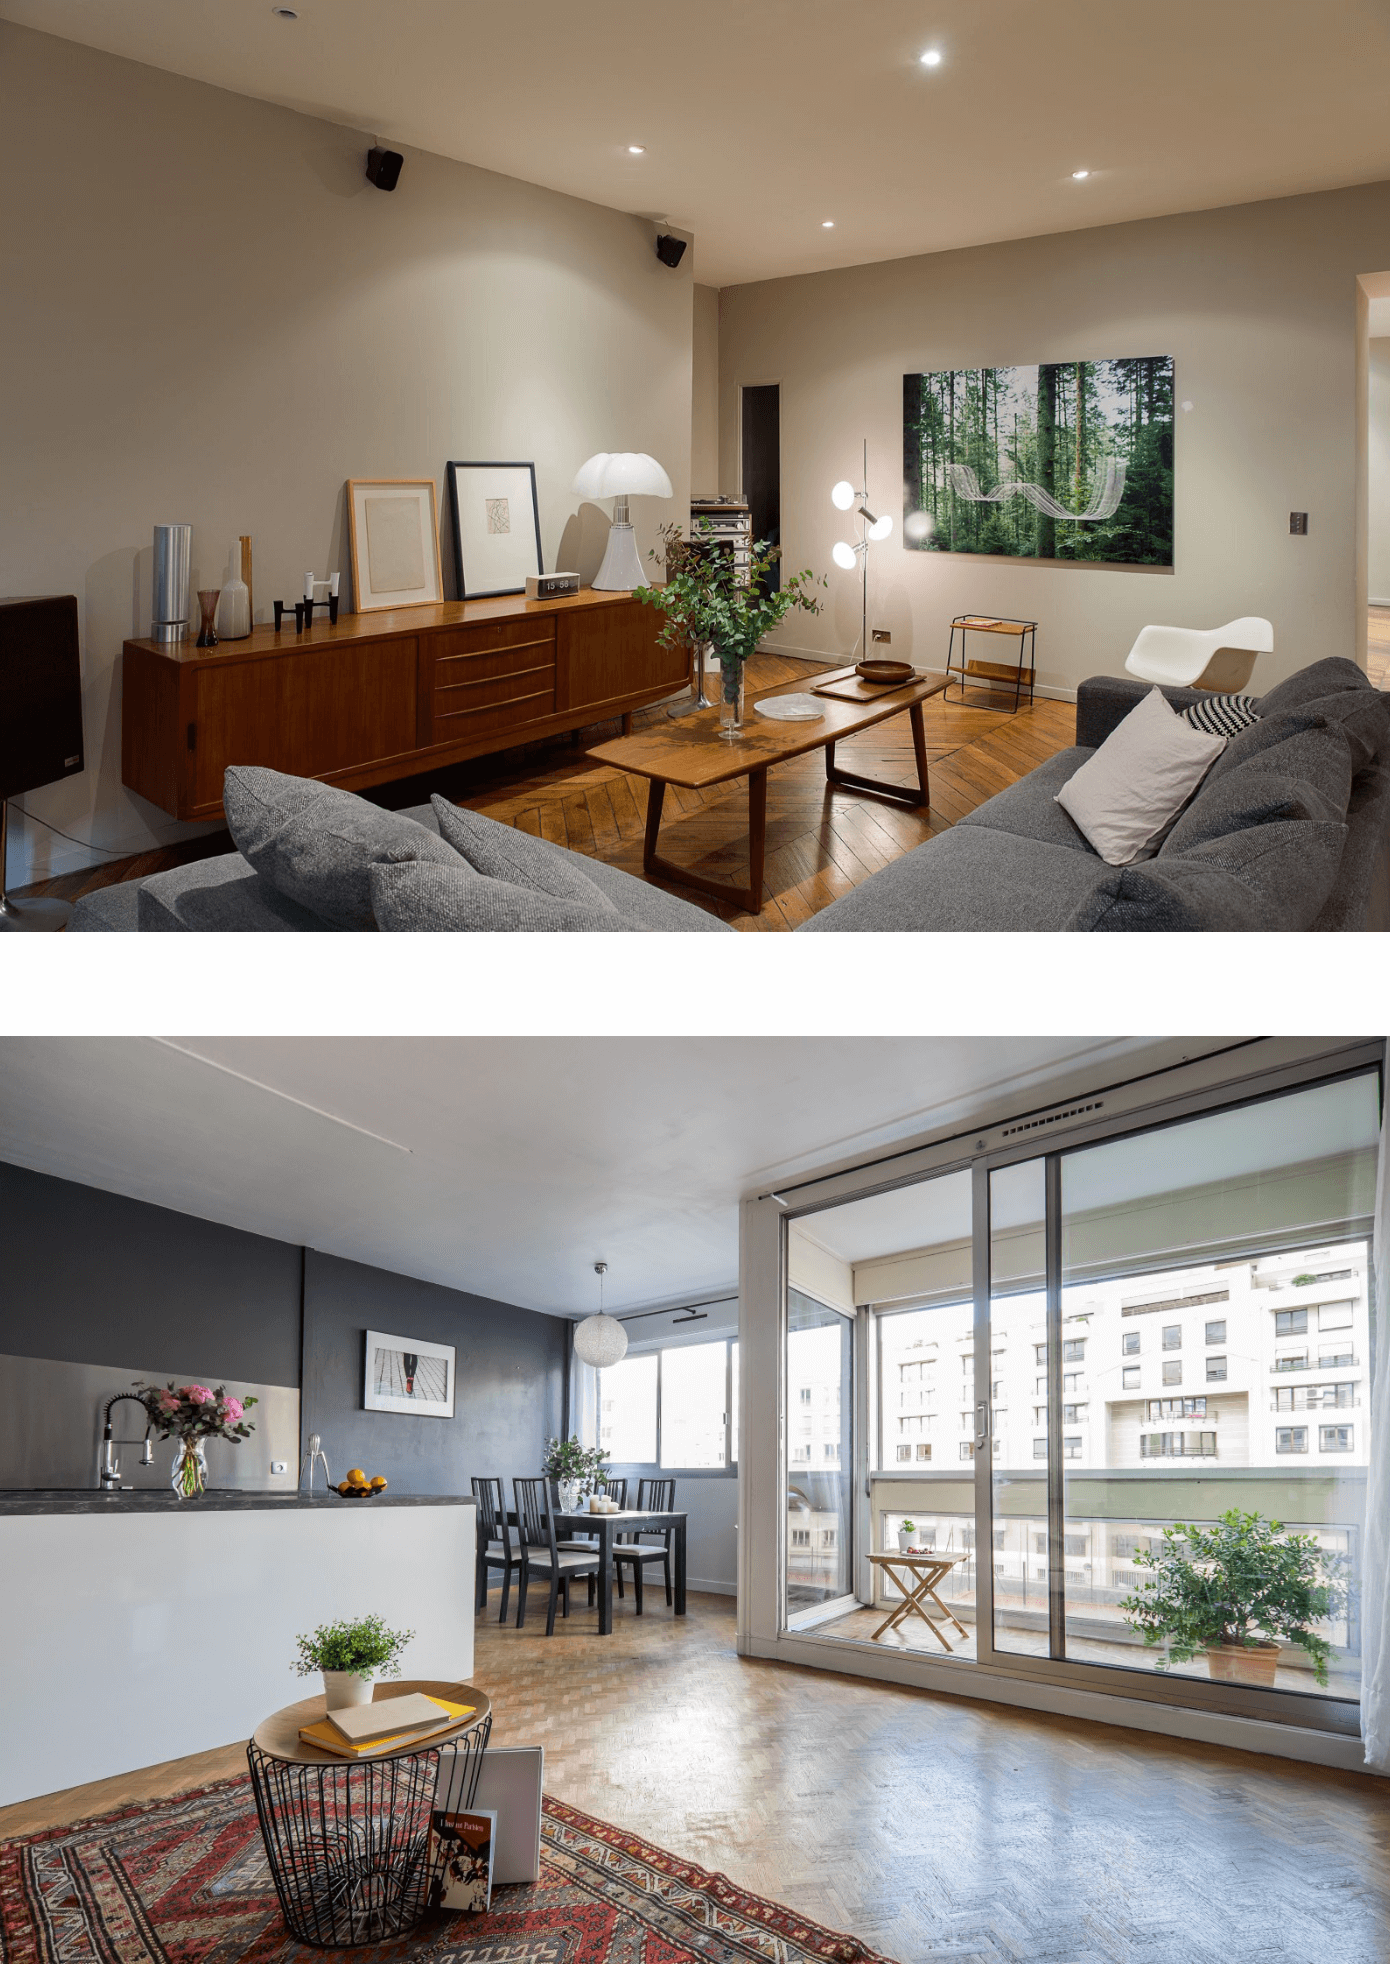 bumper-blog-news-immobilier-lyon-appartement-vente-achat-investir-homestaging-design-decoration-lifestyle-art-14.png